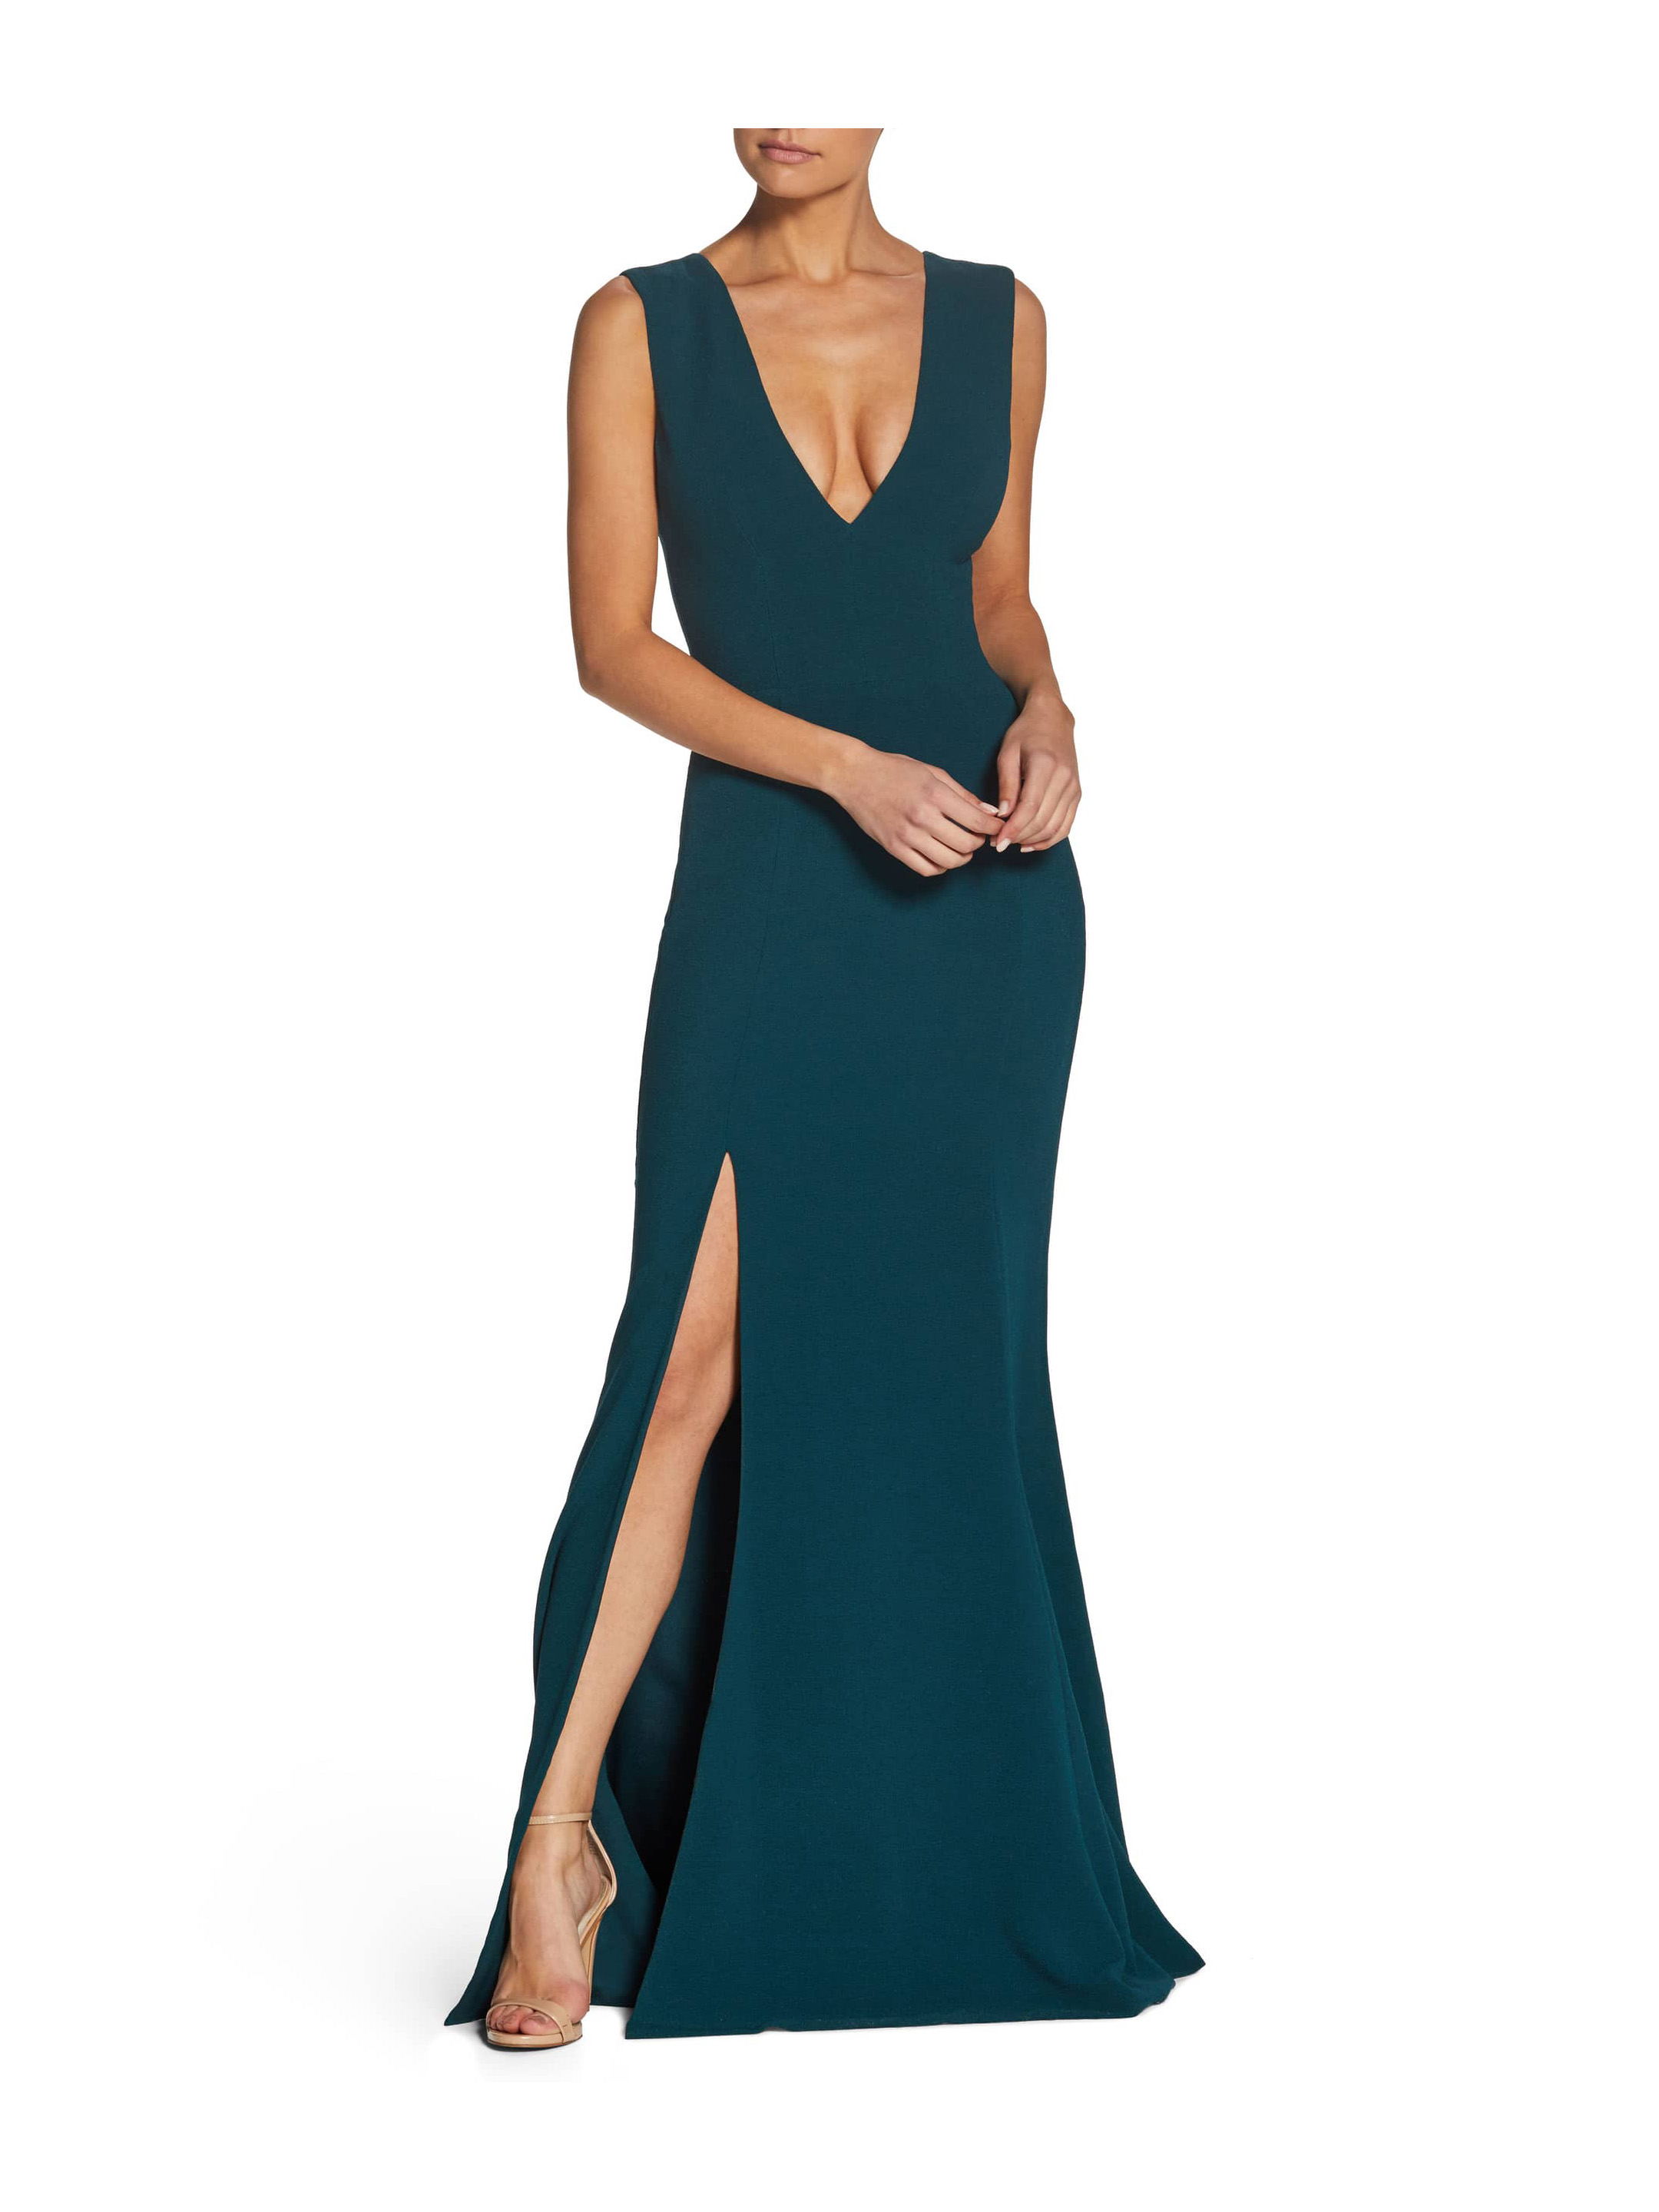 long green fall wedding guest dress with plunging neckline